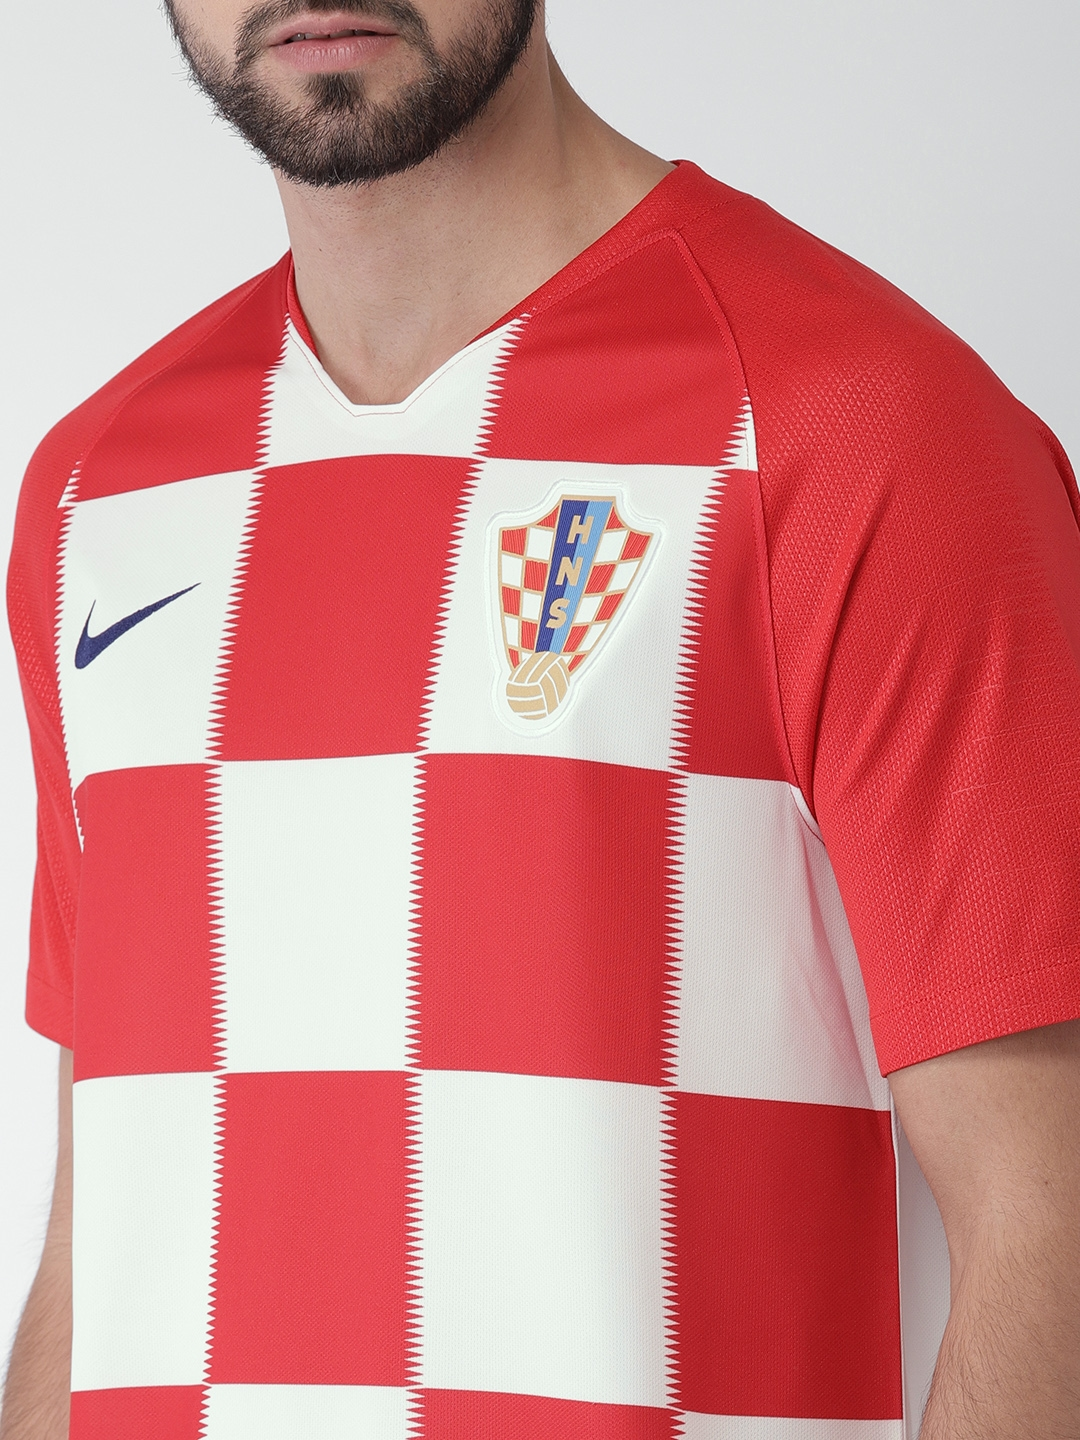 ab2bdccc Buy Nike Men Red & White Checked Croatia Stadium Home Jersey ...